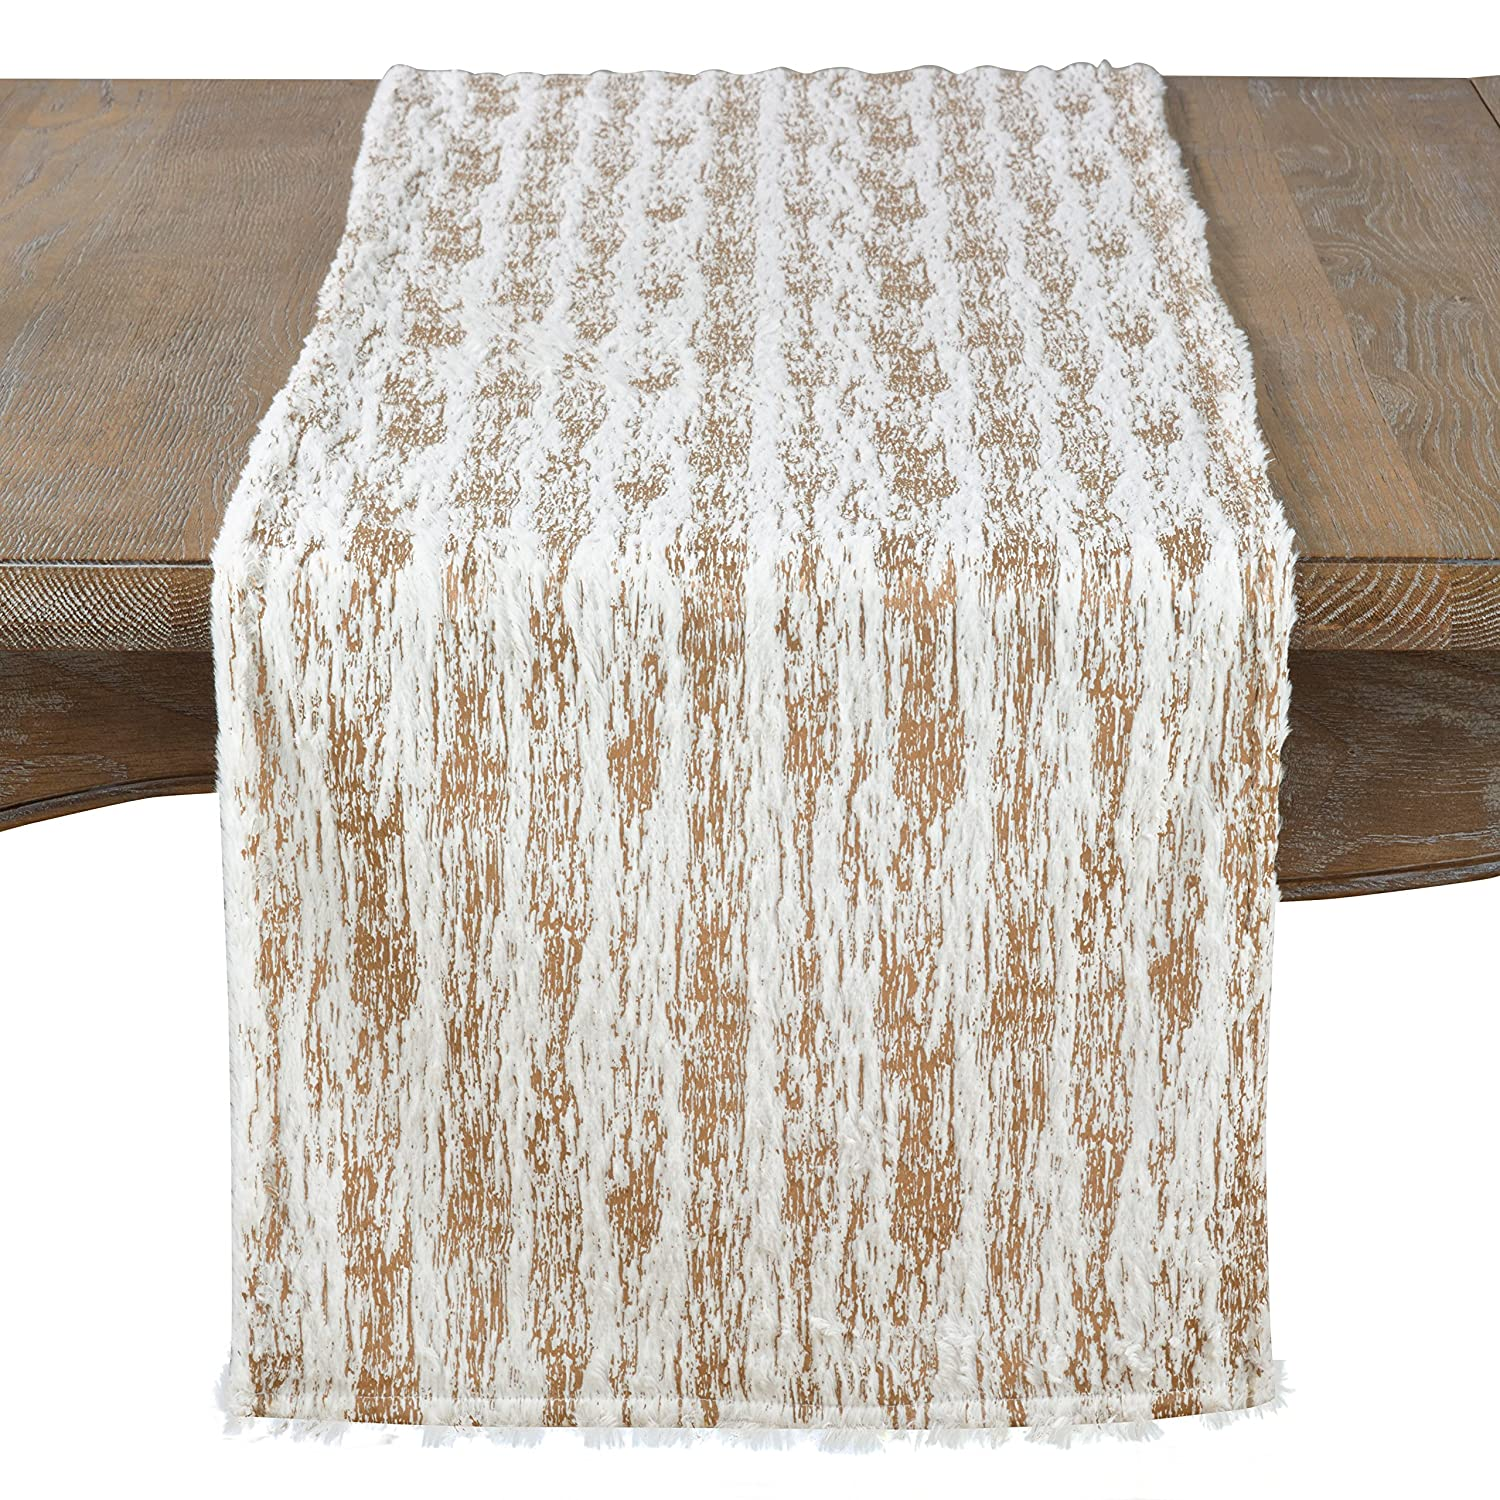 SARO LIFESTYLE Collection Faux Fur with Brushed Metallic Foil Print Runner, 16